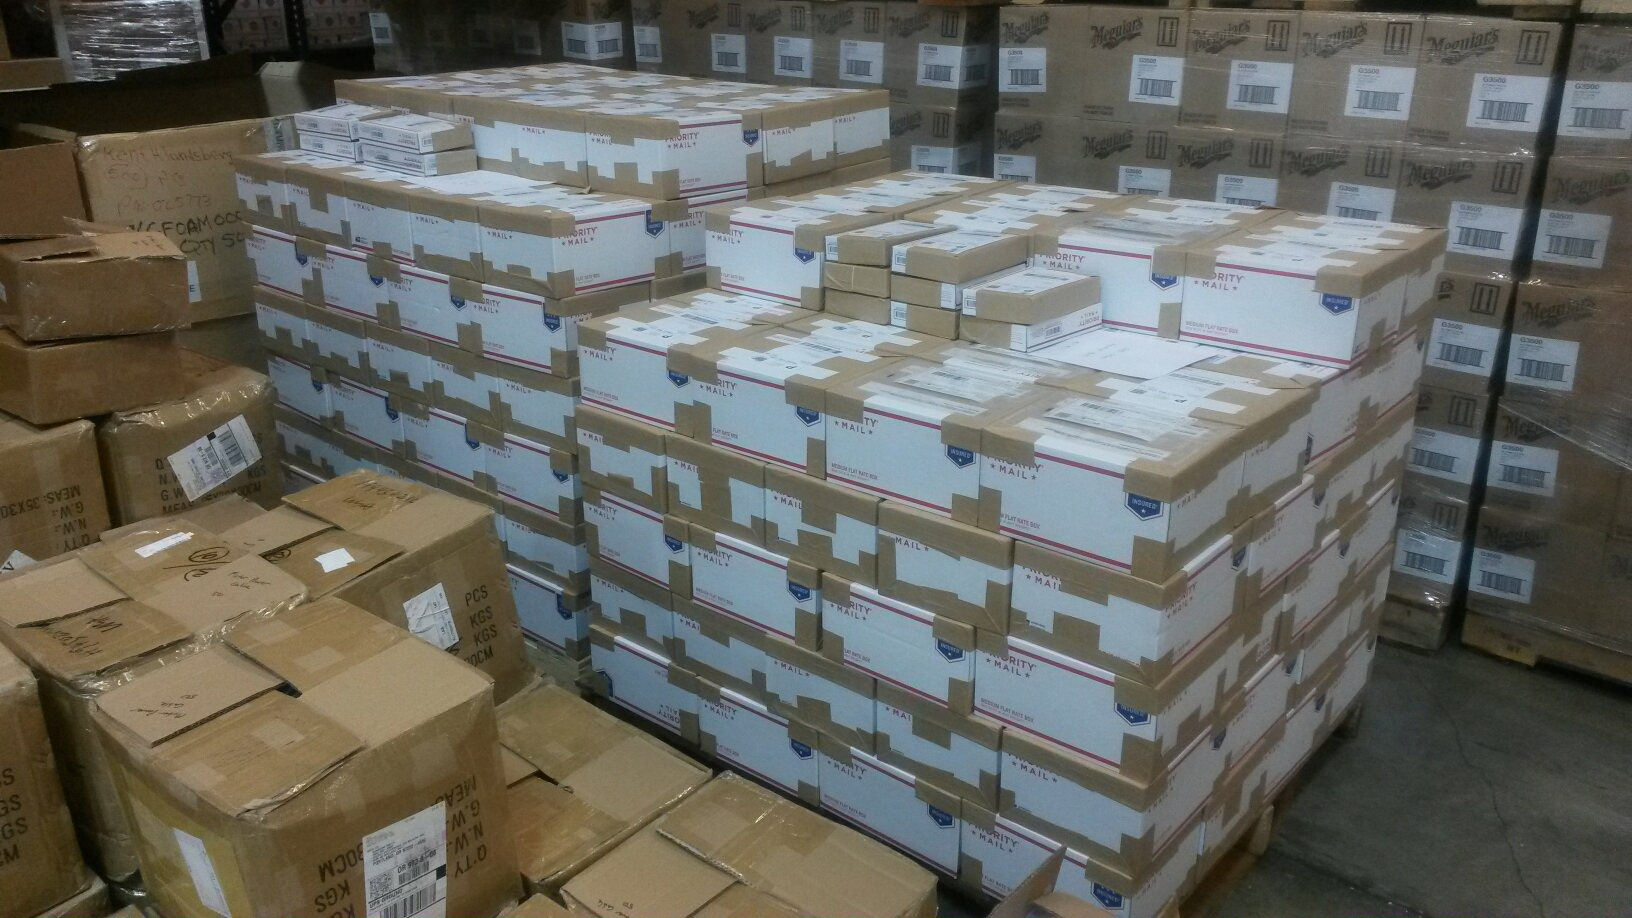 200+ kits sitting in the Exceed loading dock waiting to get picked up